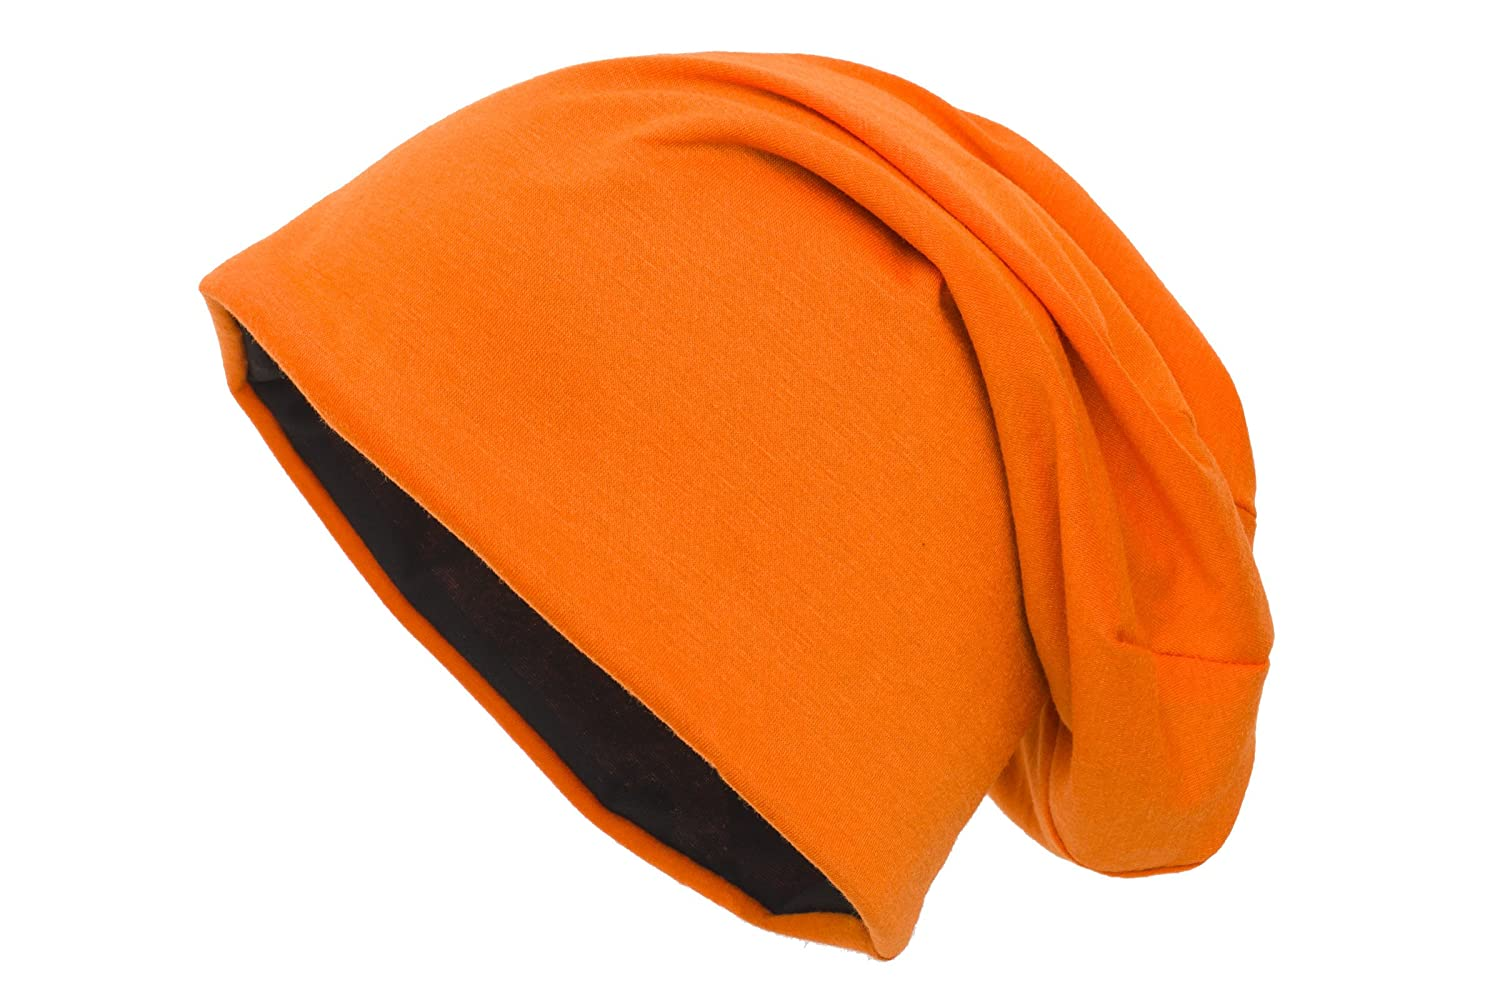 shenky - Cappello double-face in 2 colori - unisex 2172  1540897710 ... bd9cd3352ed3